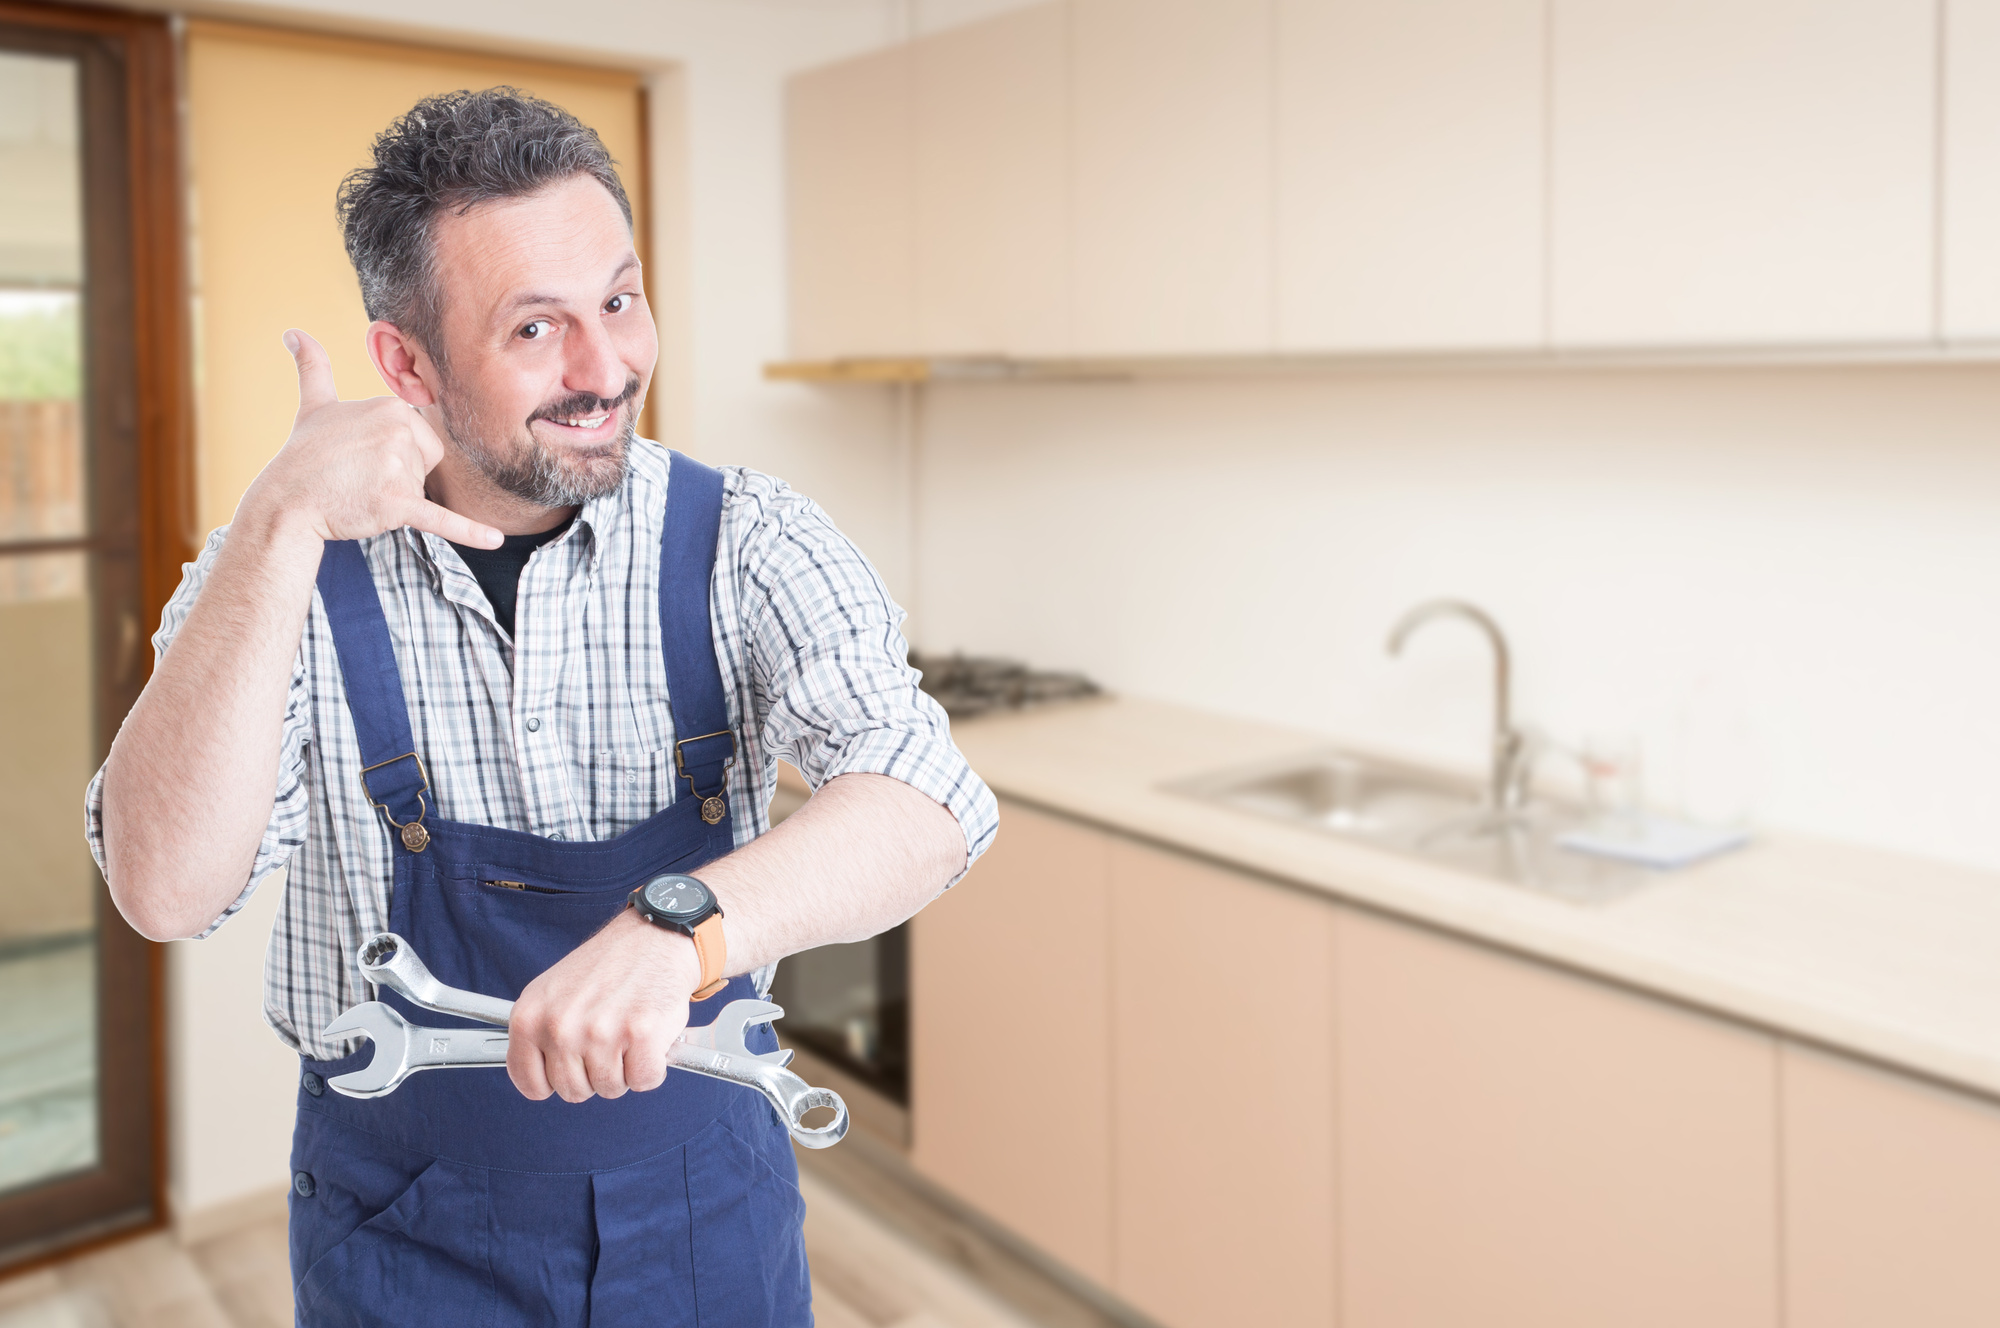 5 Signs That You Need to Call a Plumber Immediately